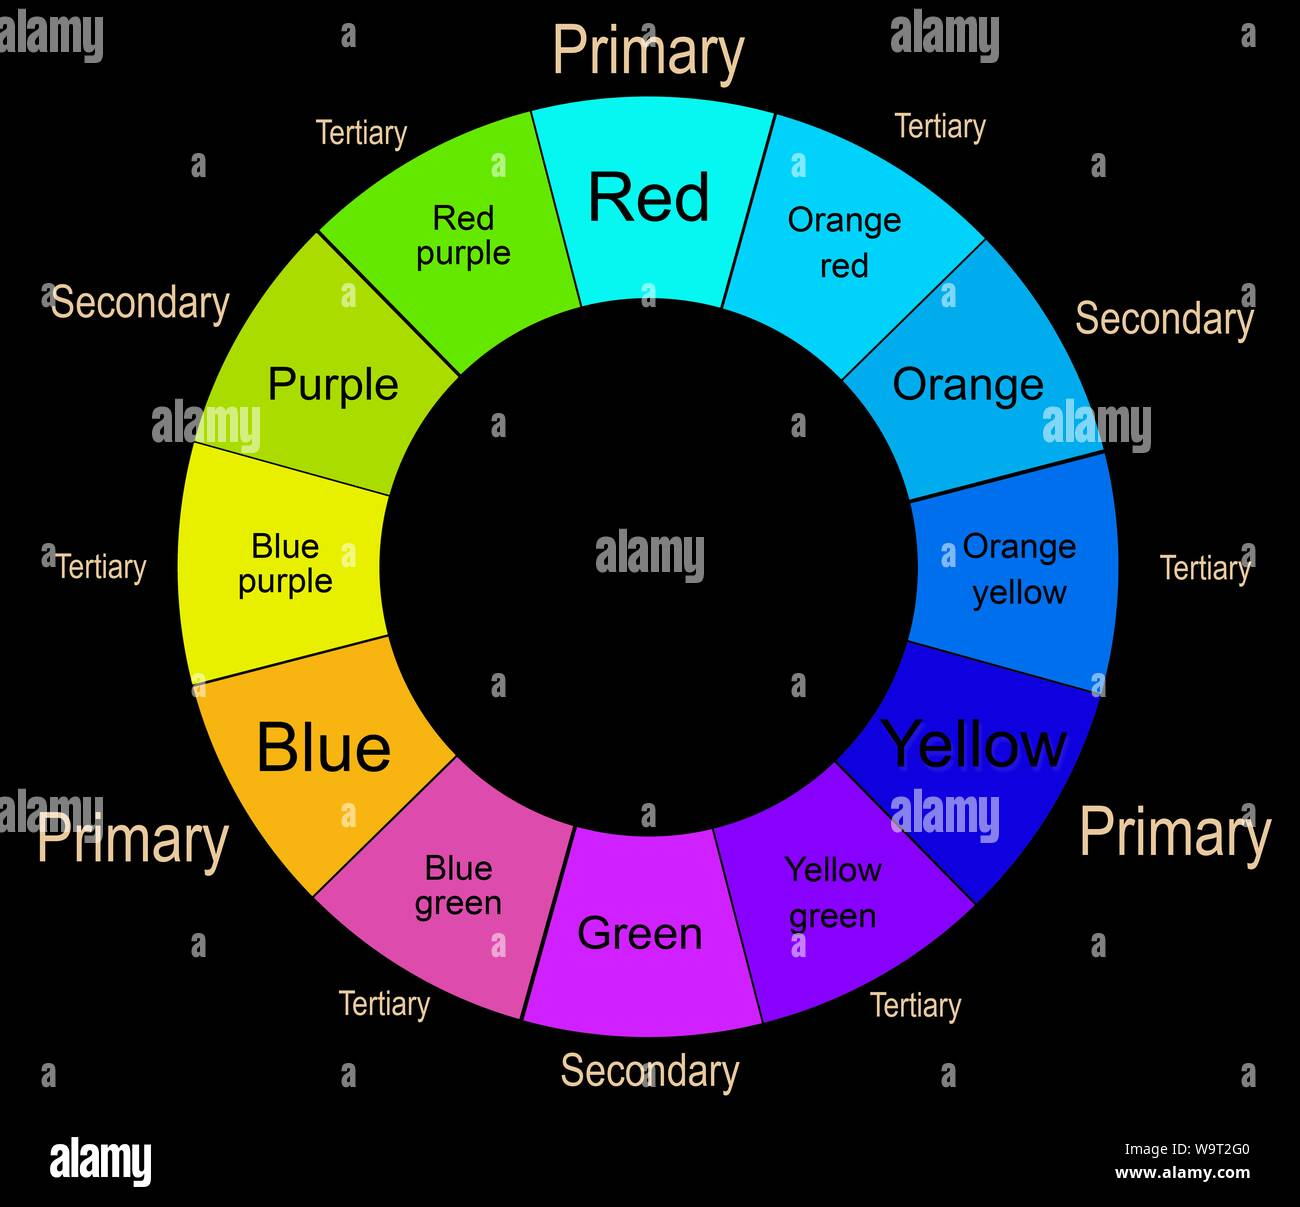 Colour Wheel With Primary Secondary And Tertiary Colours Stock Photo Alamy